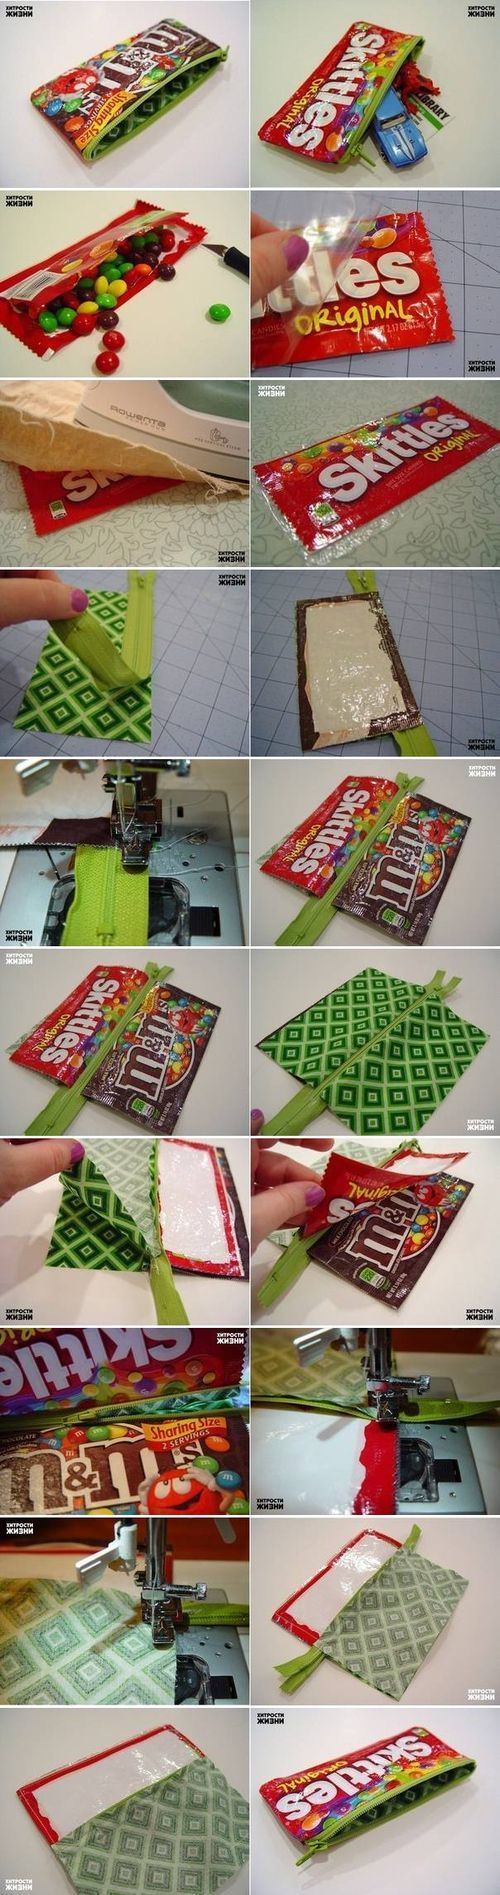 Astucci riciclosi - DIY Candy Wrap Pencil Case DIY Projects / UsefulDIY.com